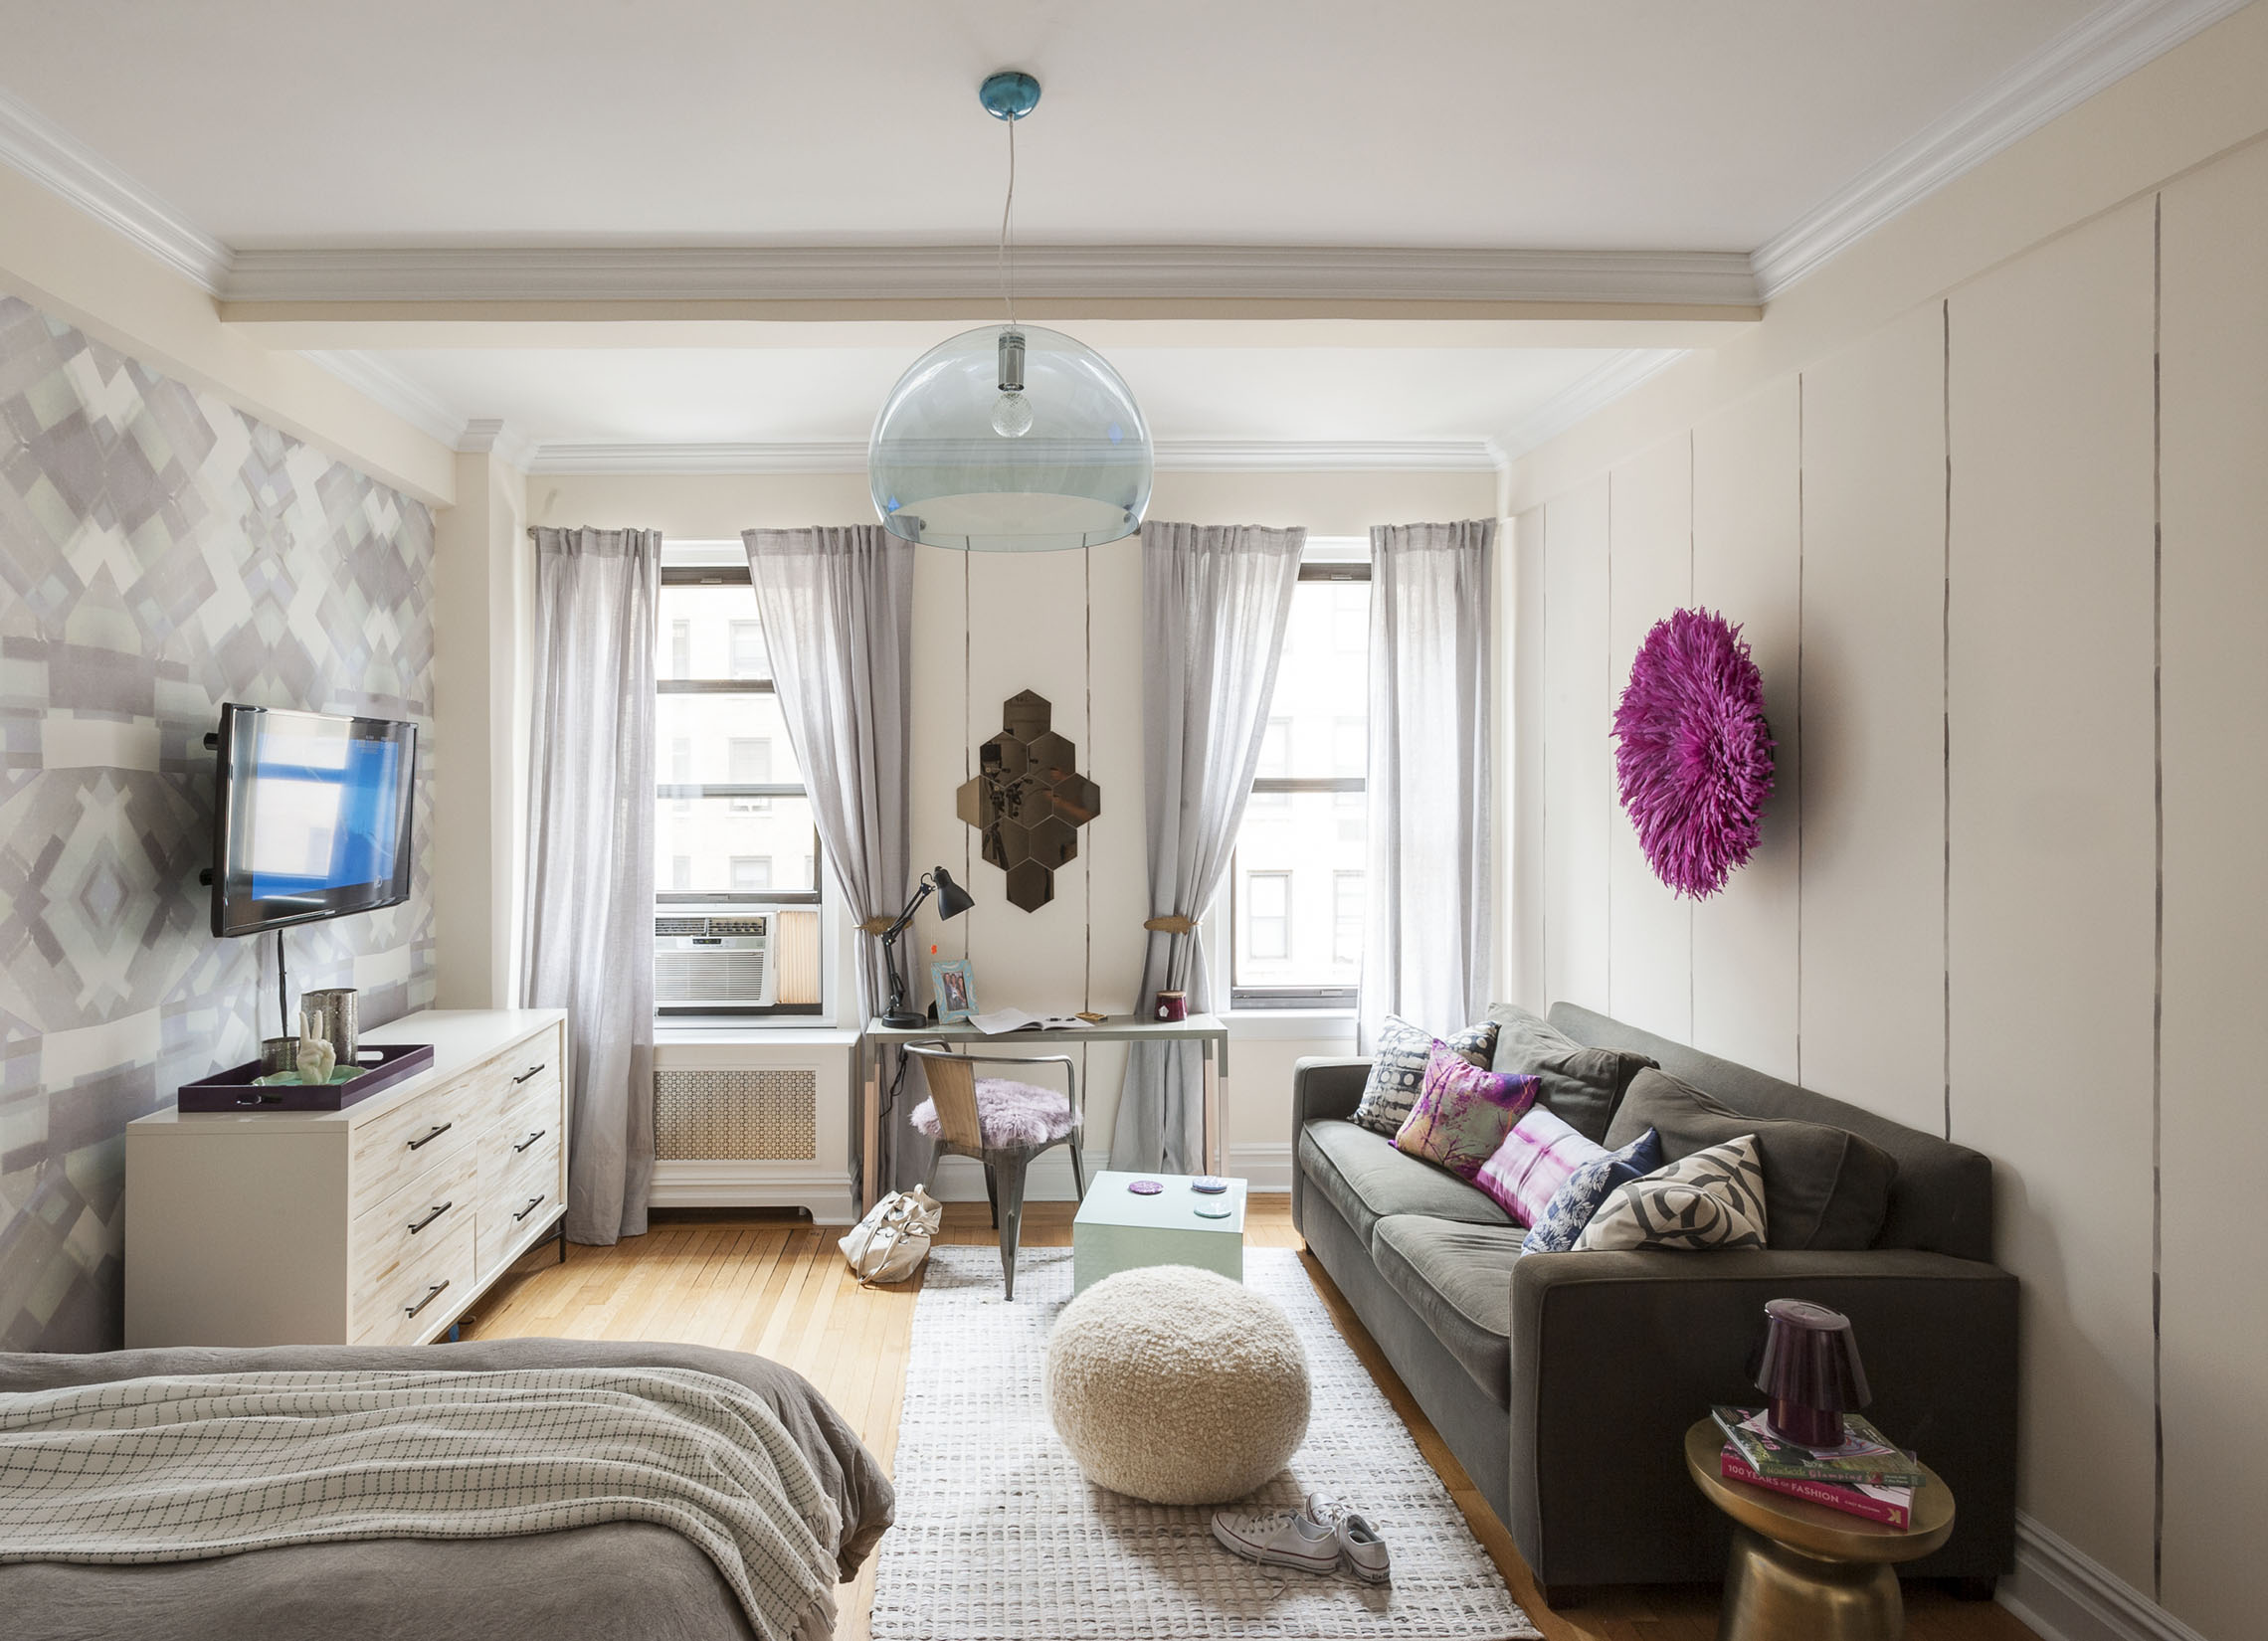 10 Tips To Maximize Space In Small Apartments